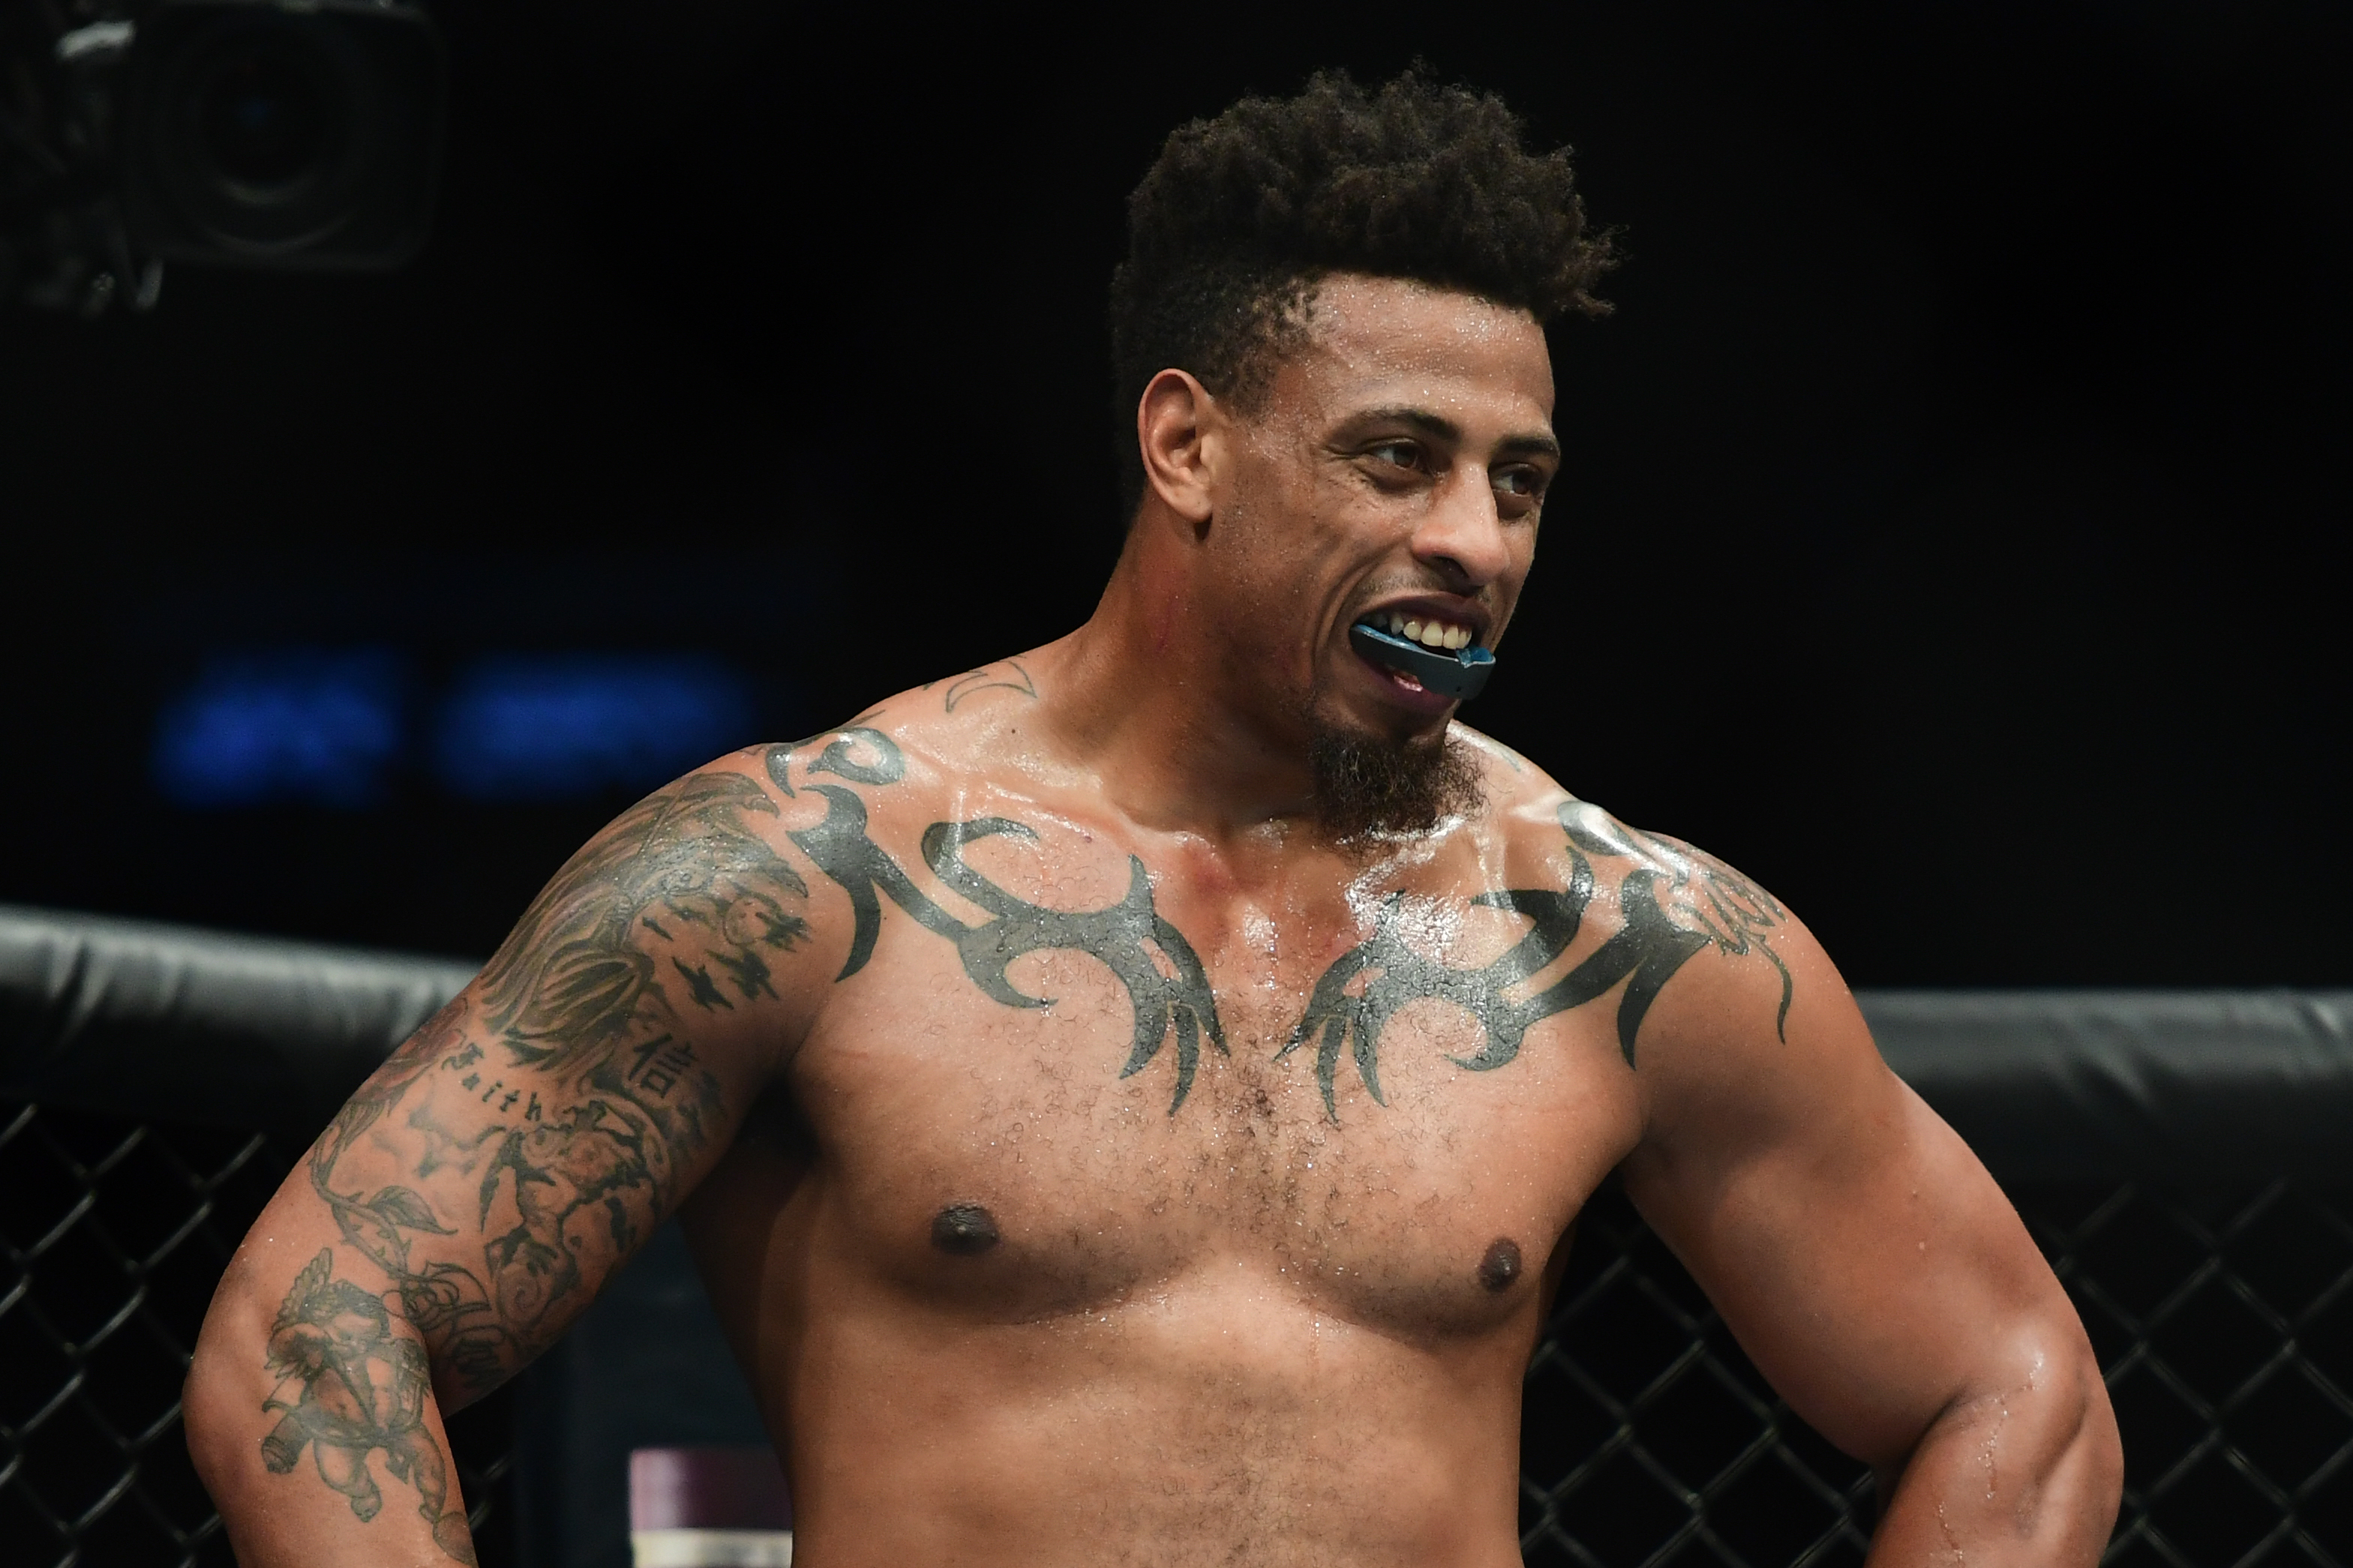 Greg Hardy 'humbled' by 'frustrating' loss in UFC debut